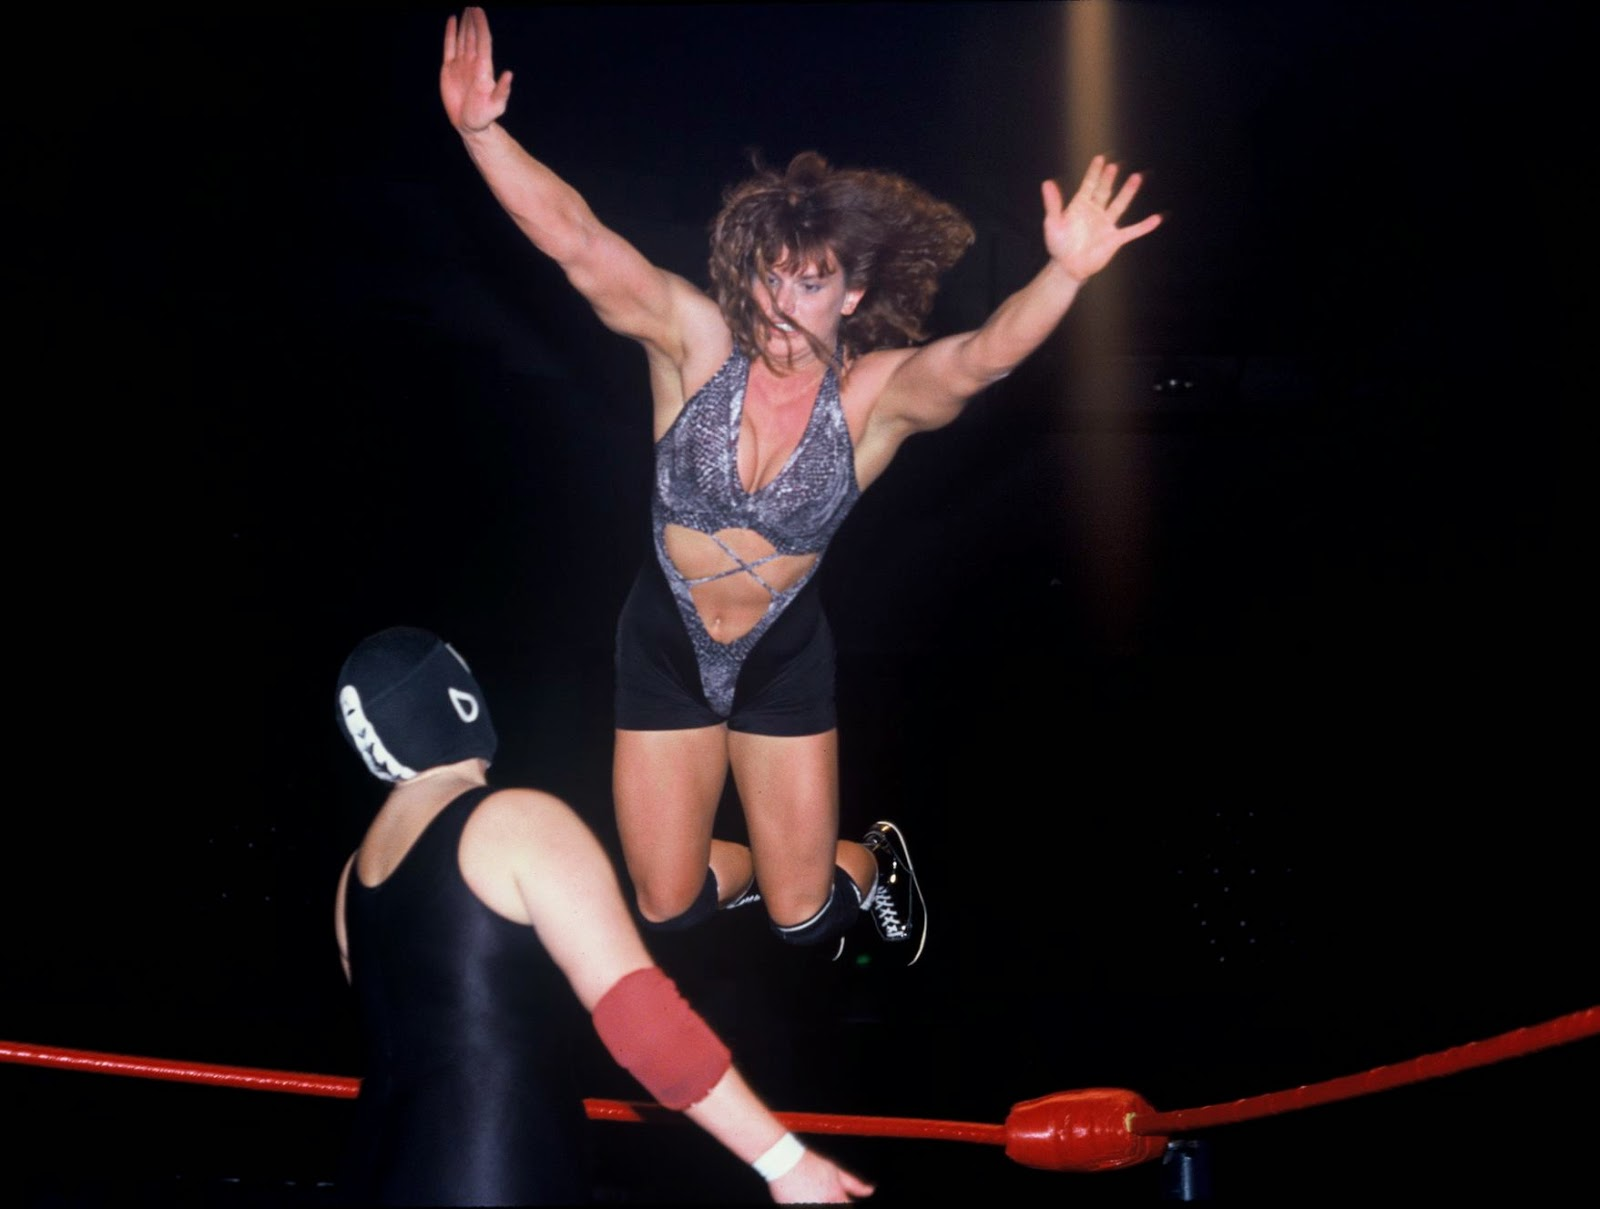 Terri Power - Female Pro Wrestling